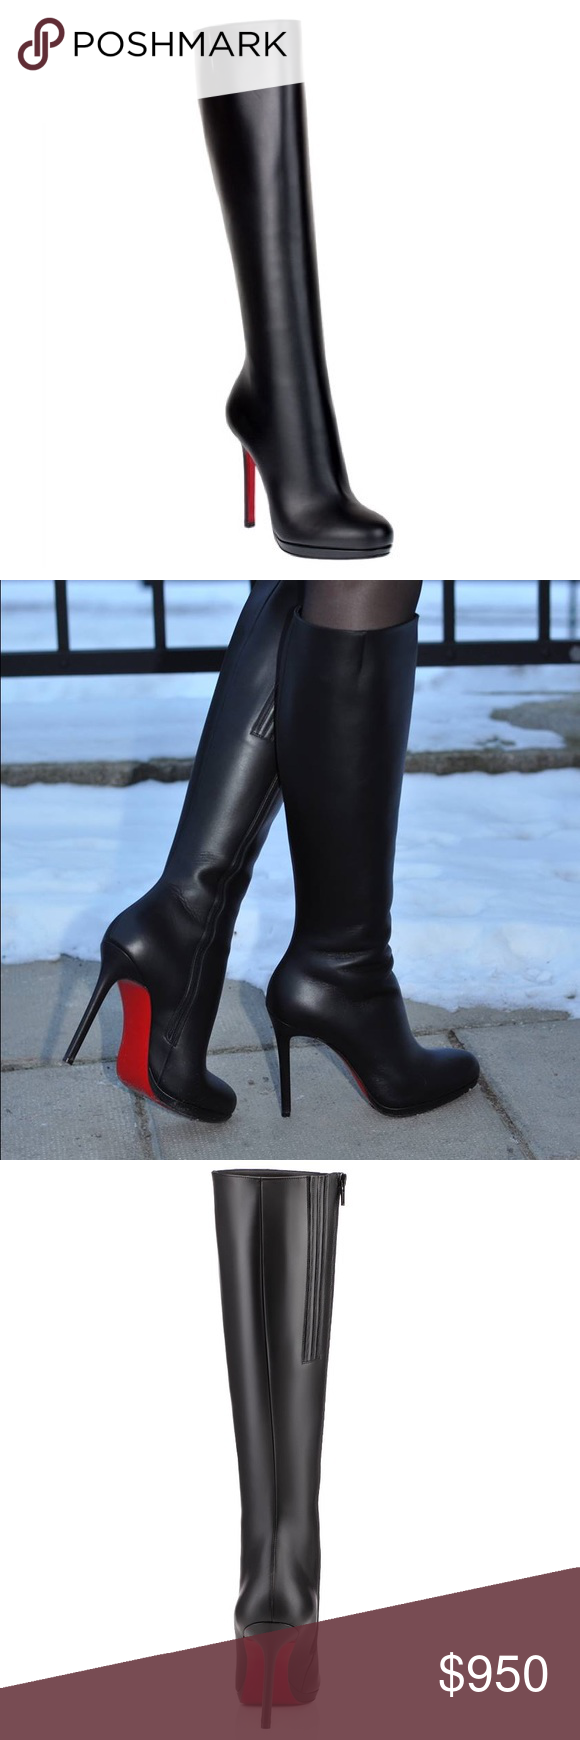 brand new 4efcb 9f006 christian louboutin botalili leather boots